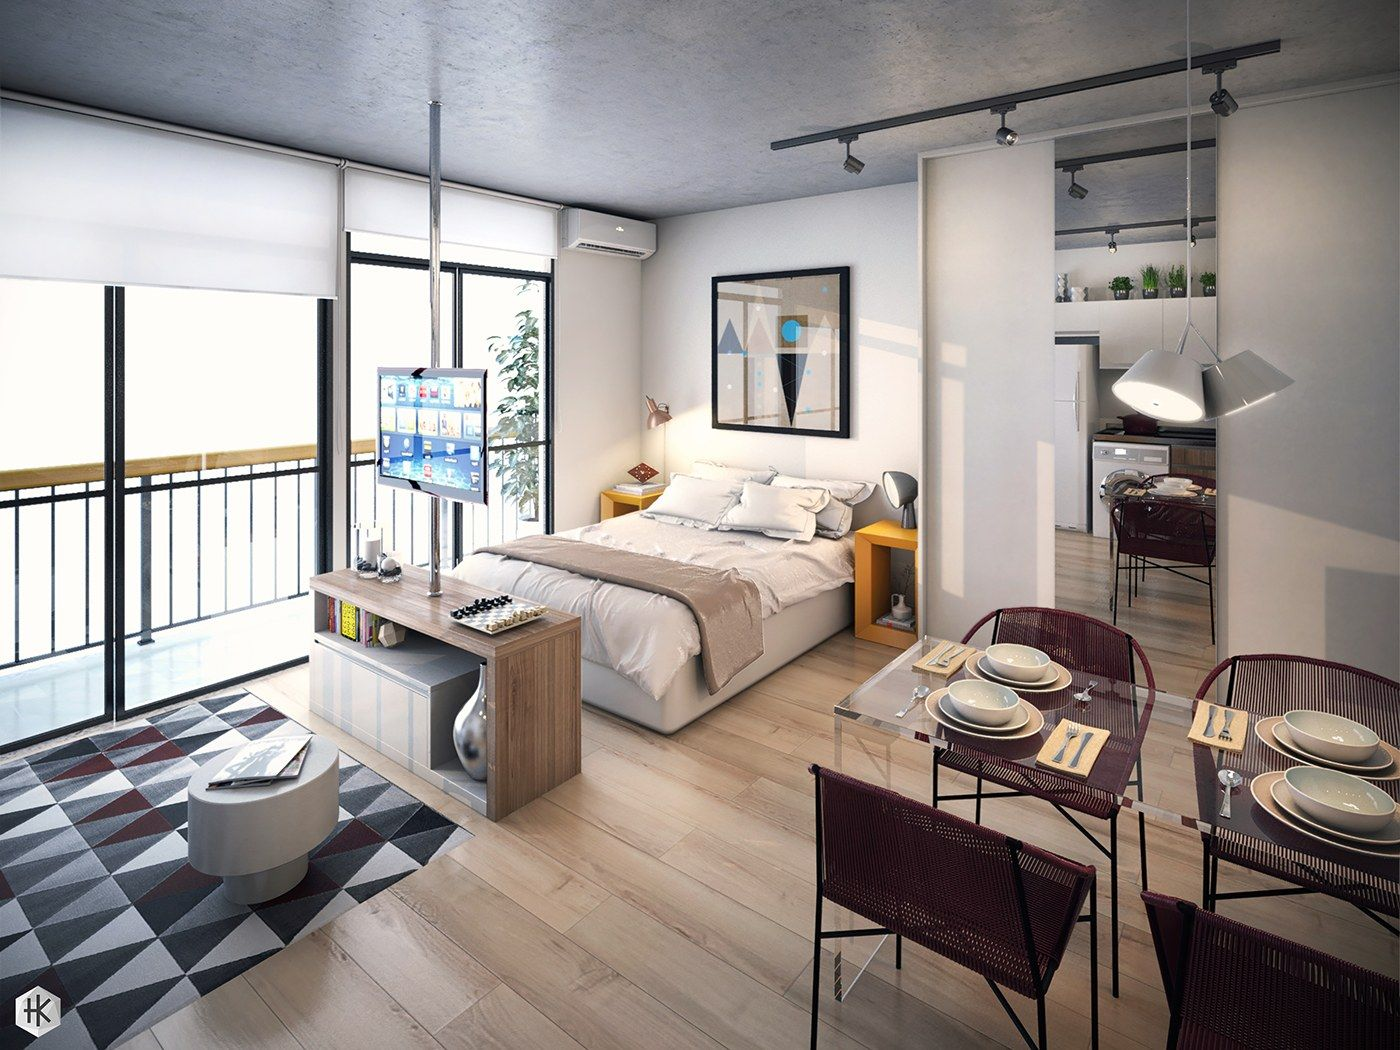 5 Small Studio Apartments With Beautiful Design Small Apartment